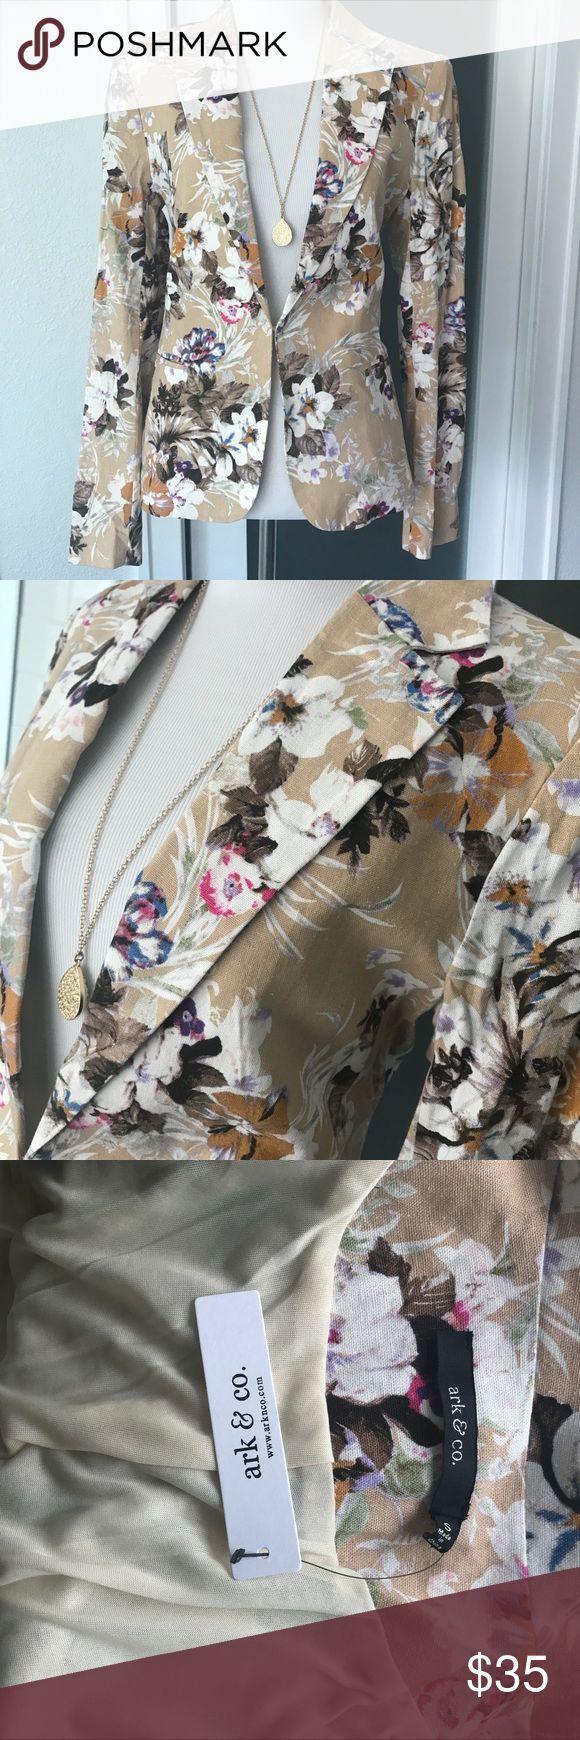 Women's floral print blazer Women's fitted blazer. Gorgeous floral print, perfect for spring! Great transitional piece as the weather gets warmer. Wear with a white cami, skinny ankle jeans, and some cute heels! Fully lined, and the fabric has a very nice feel to it. There is one clasp at the front that is very hidden if you prefer to wear it closed. Can also be worn open. Ark & Co Tops Blouses